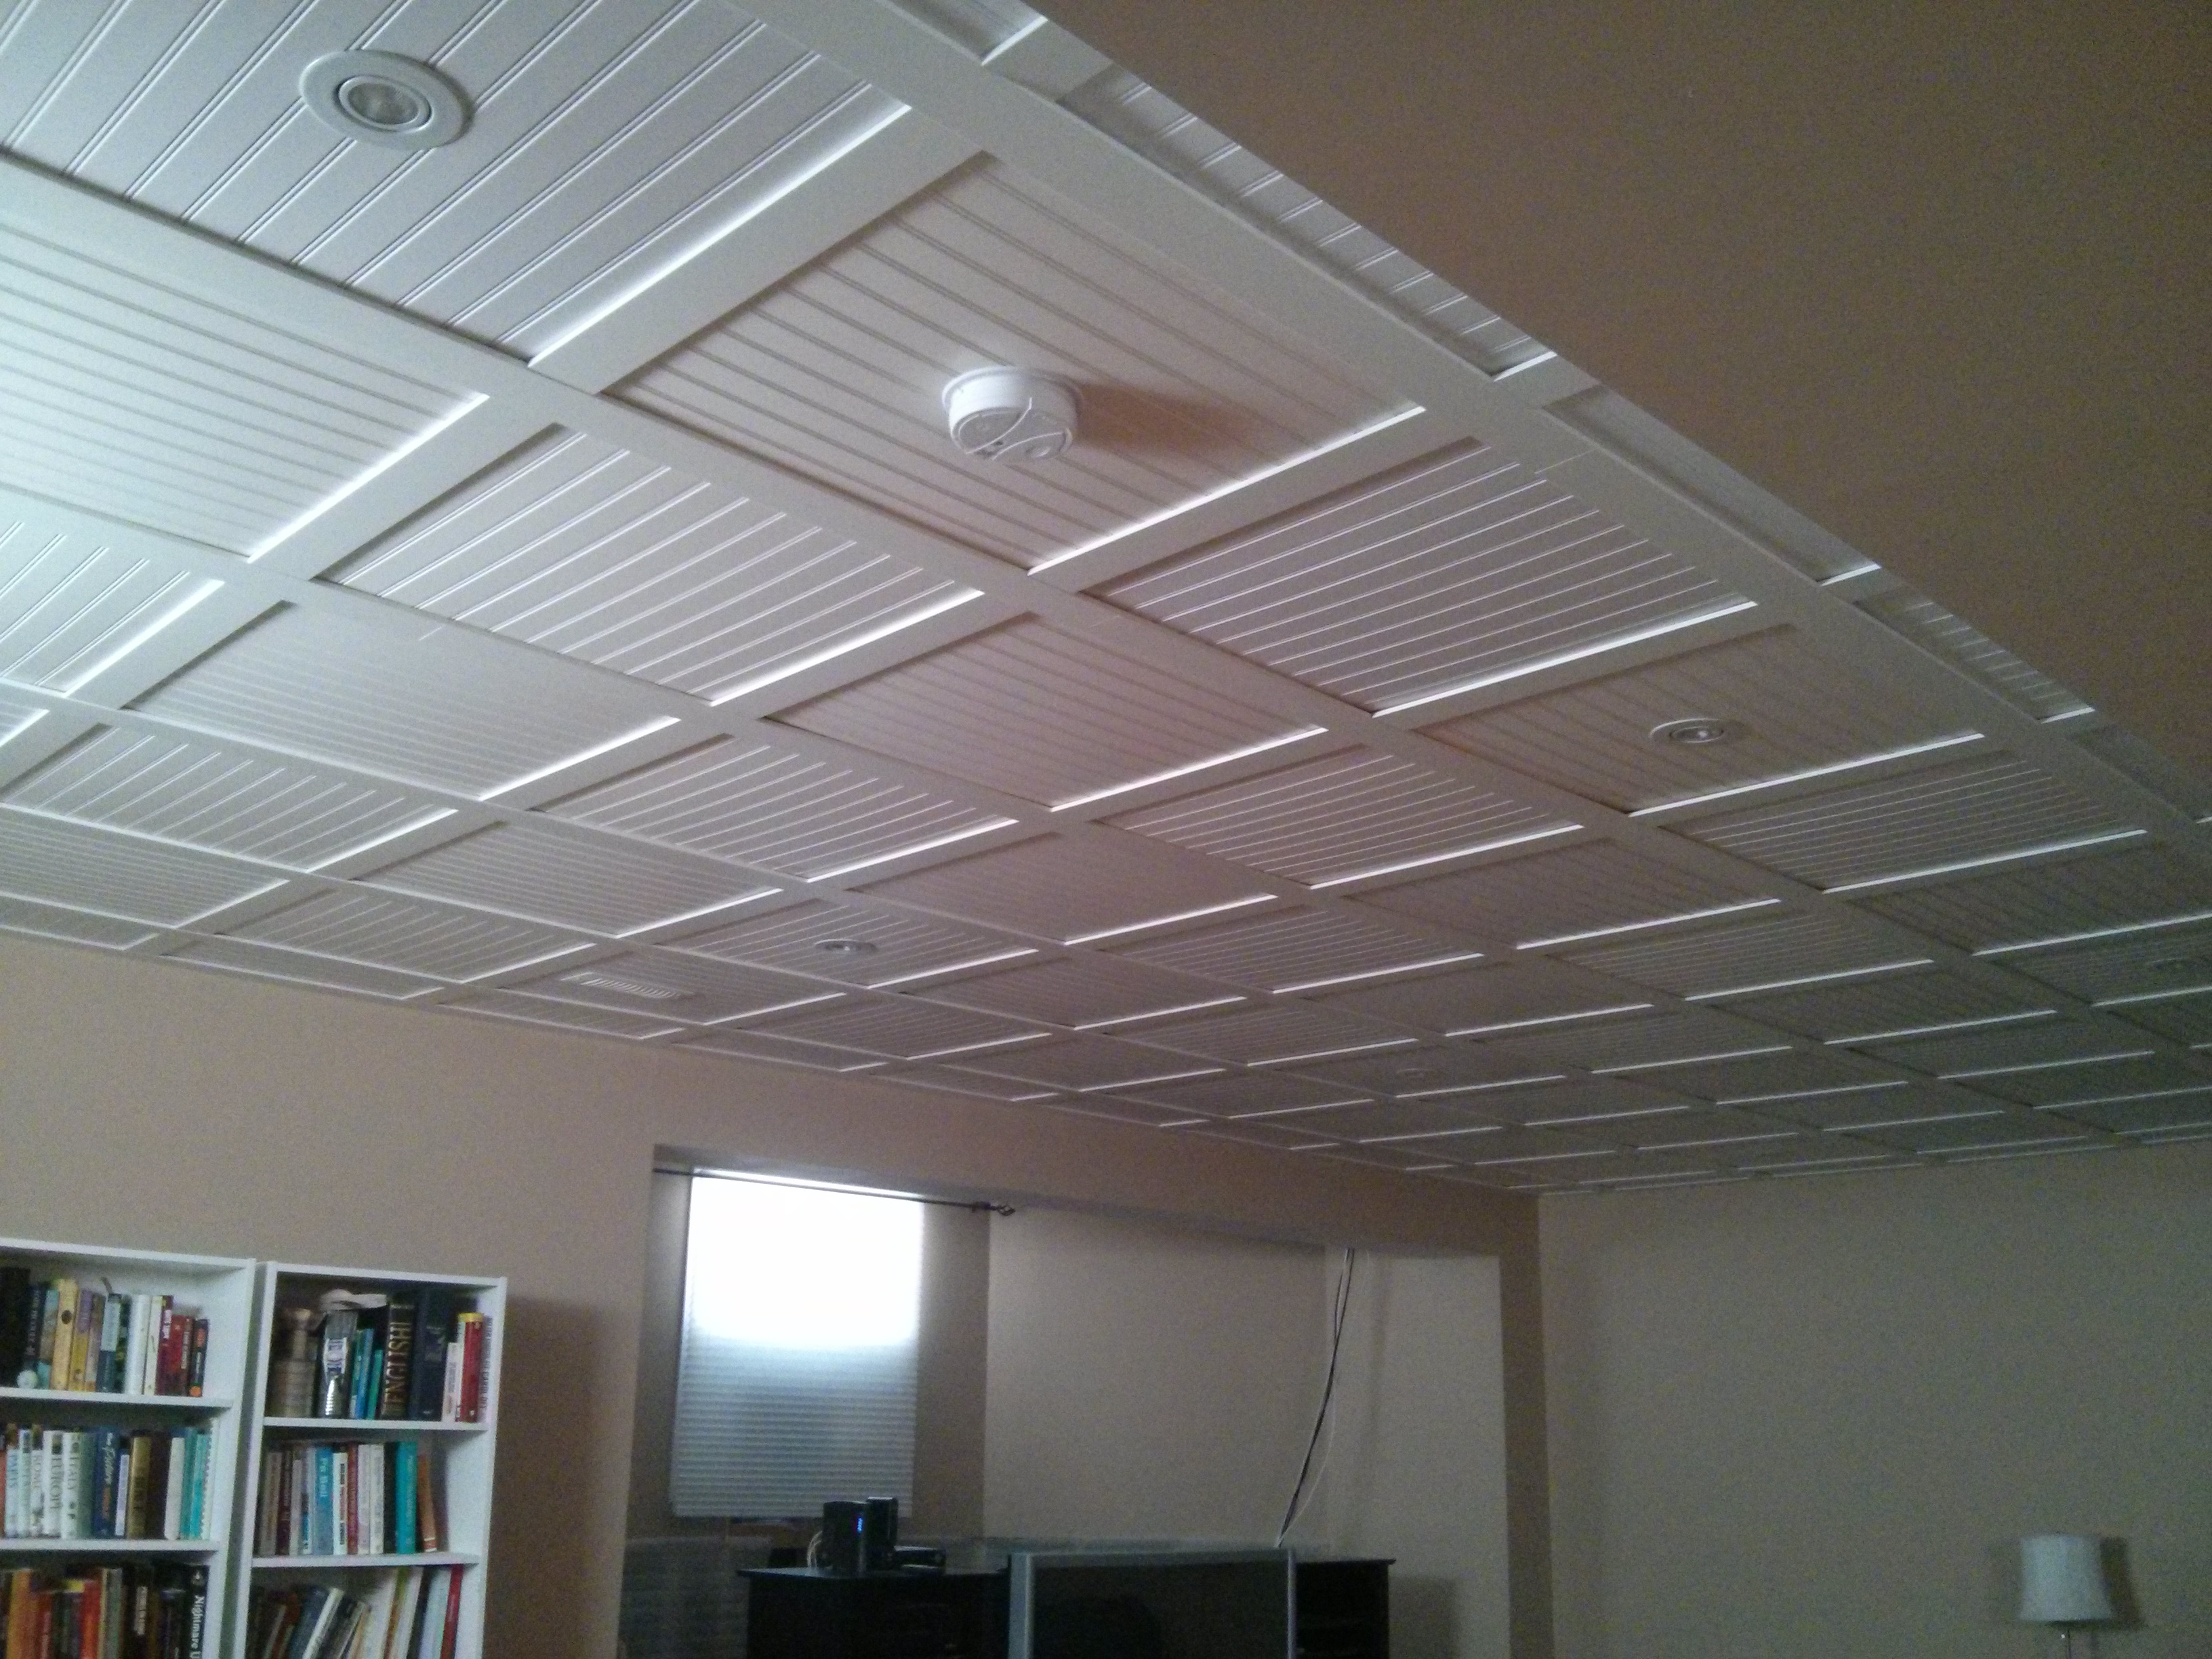 10 Stylish Covered Ceiling Ideas To Make It Smooth